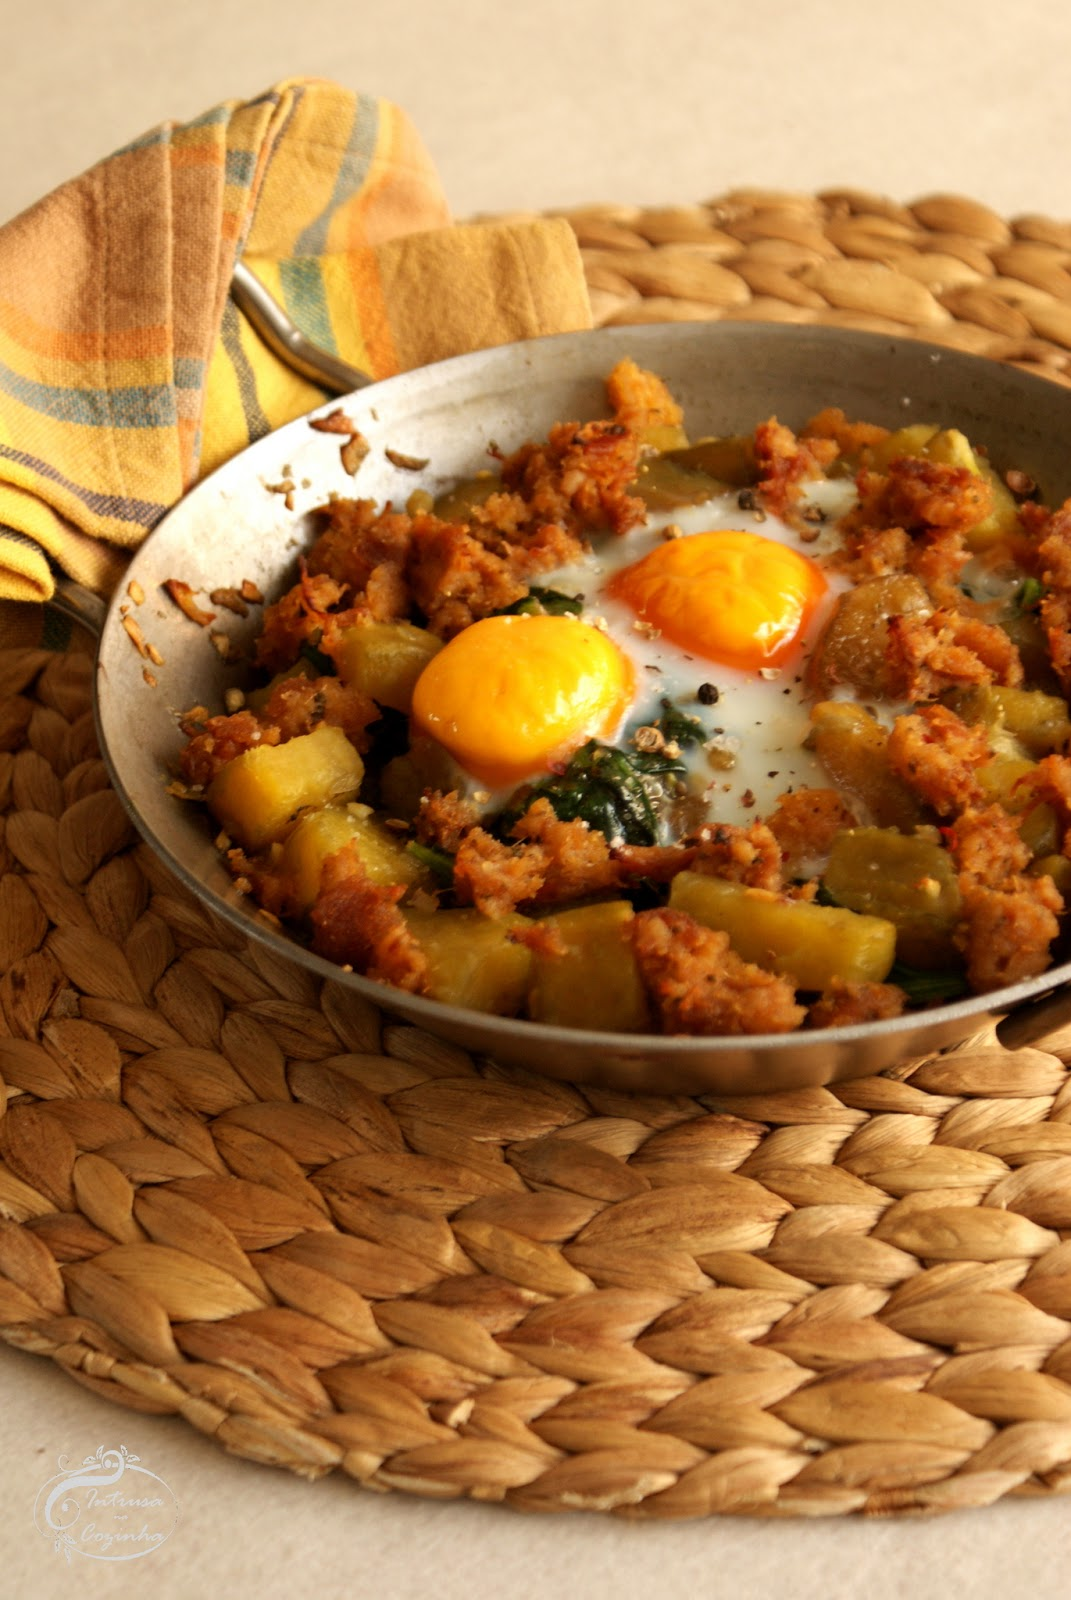 Batata Doce com Ovos & Alheira de Borrego {Sweet Potato with Eggs & Lamb's Alheira}